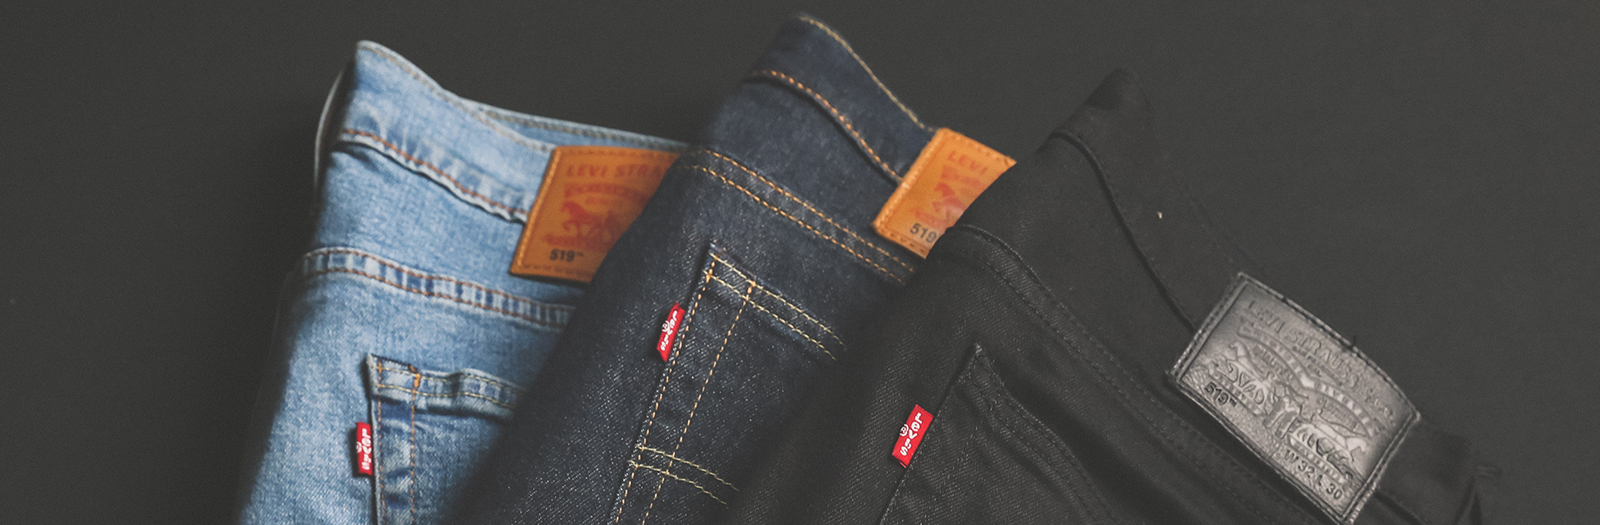 pairs of jeans